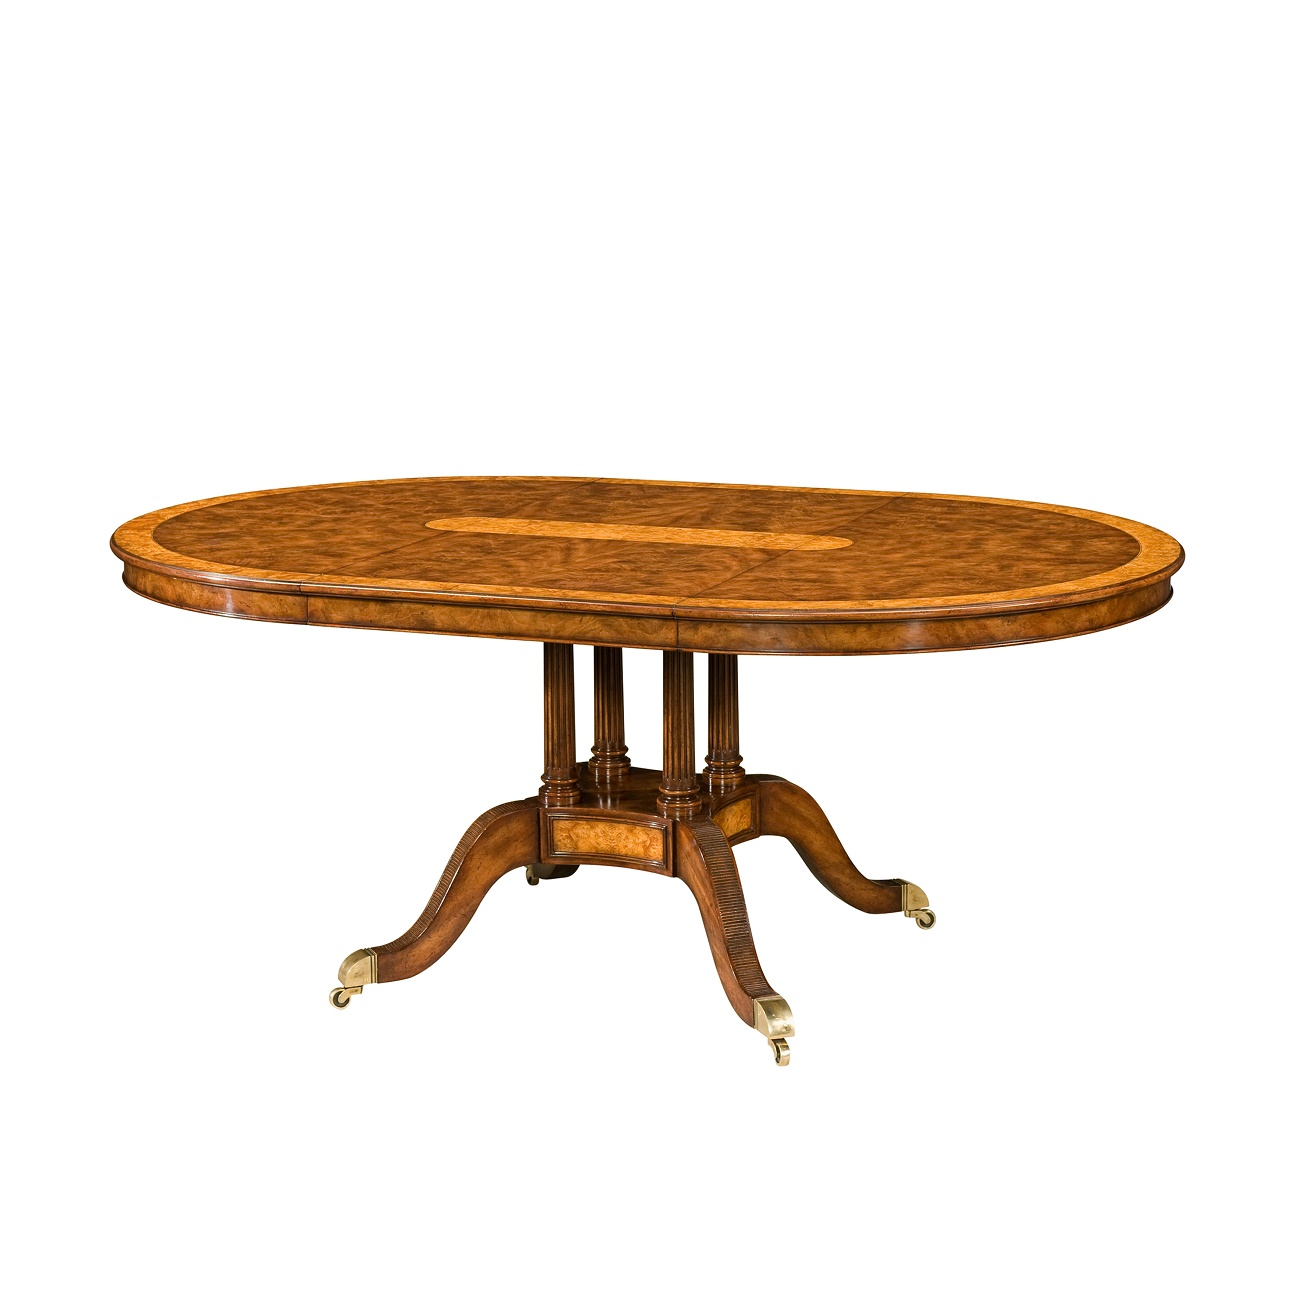 Additional Guests Dining Table, Theodore Alexander Dining Table, Brooklyn, New York